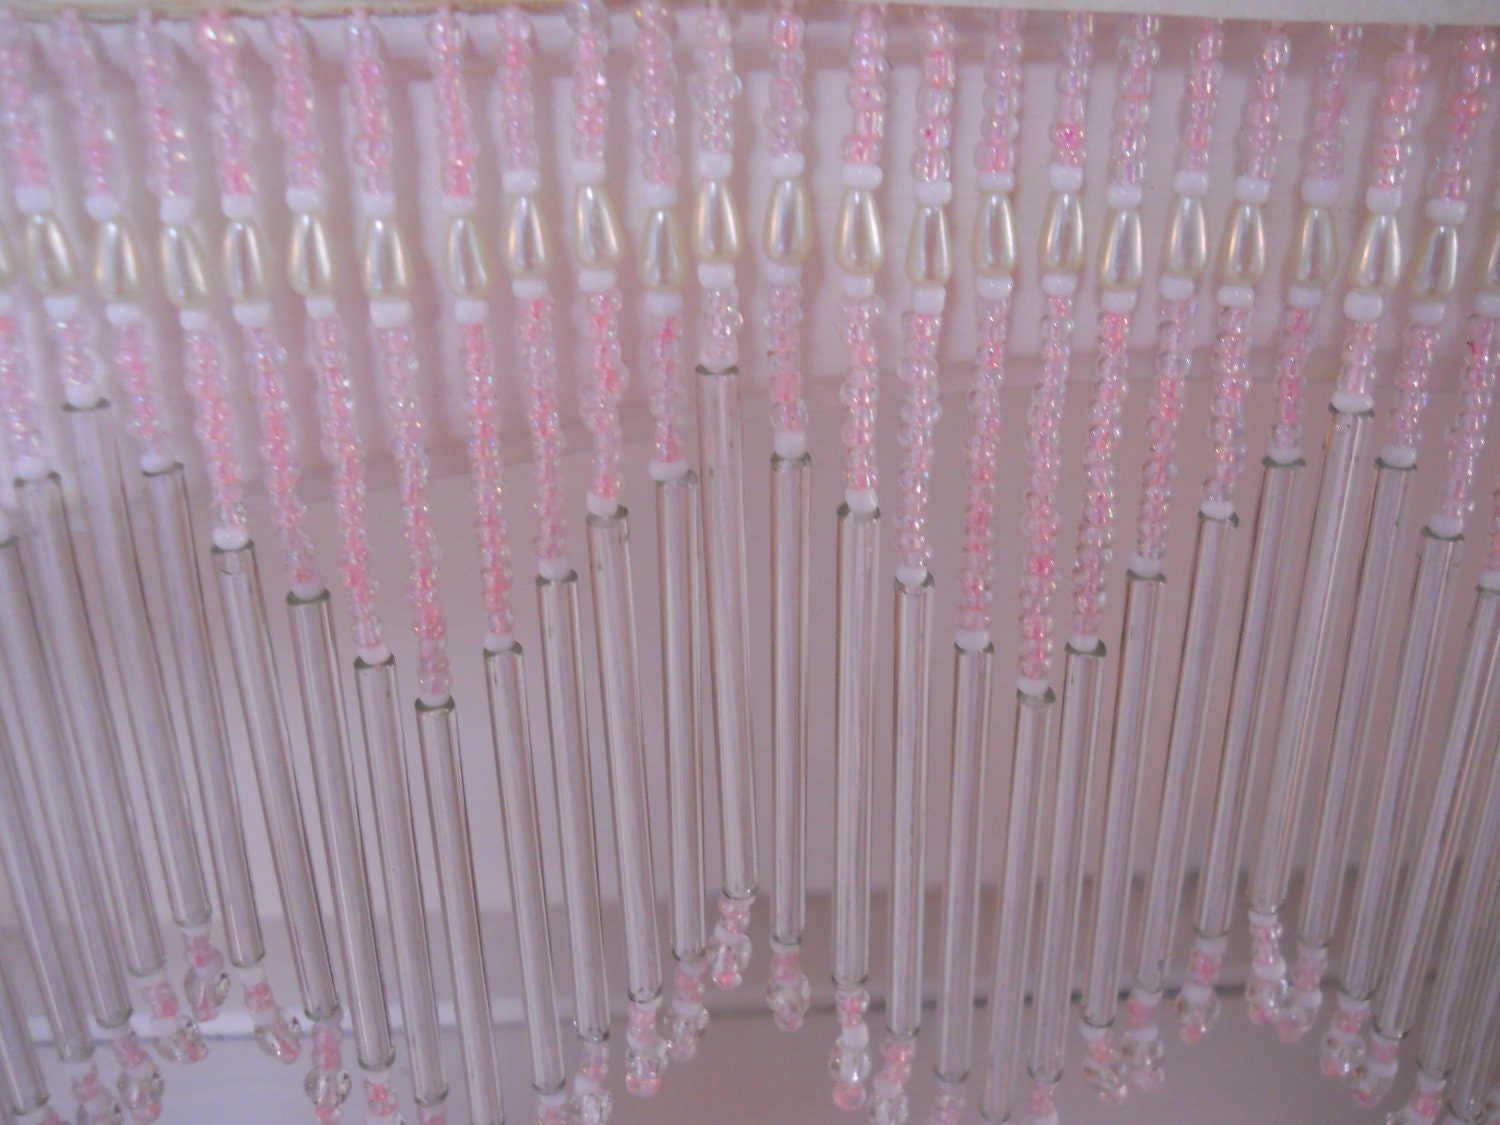 Glass Beaded Fringe Trim On Fabric Pink White And Pearl